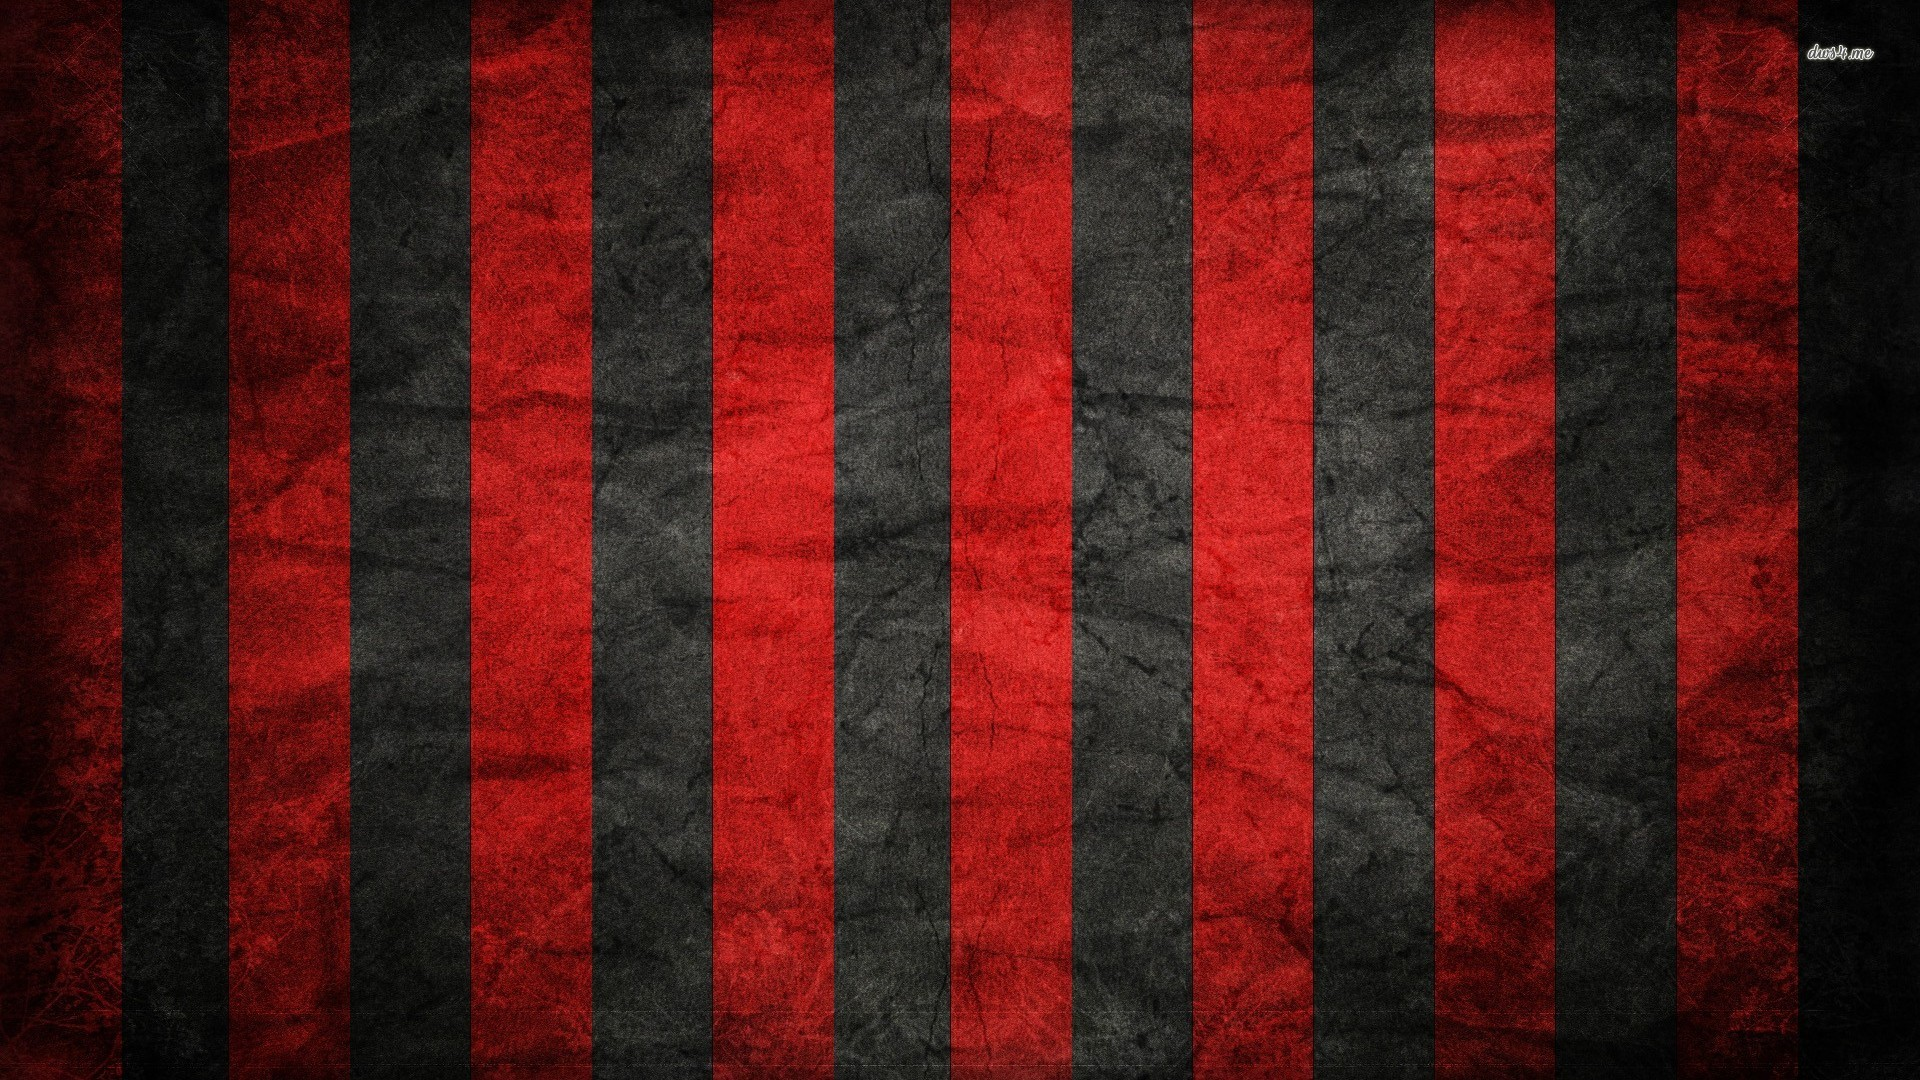 Black Red Wallpaper Posted By Sarah Tremblay